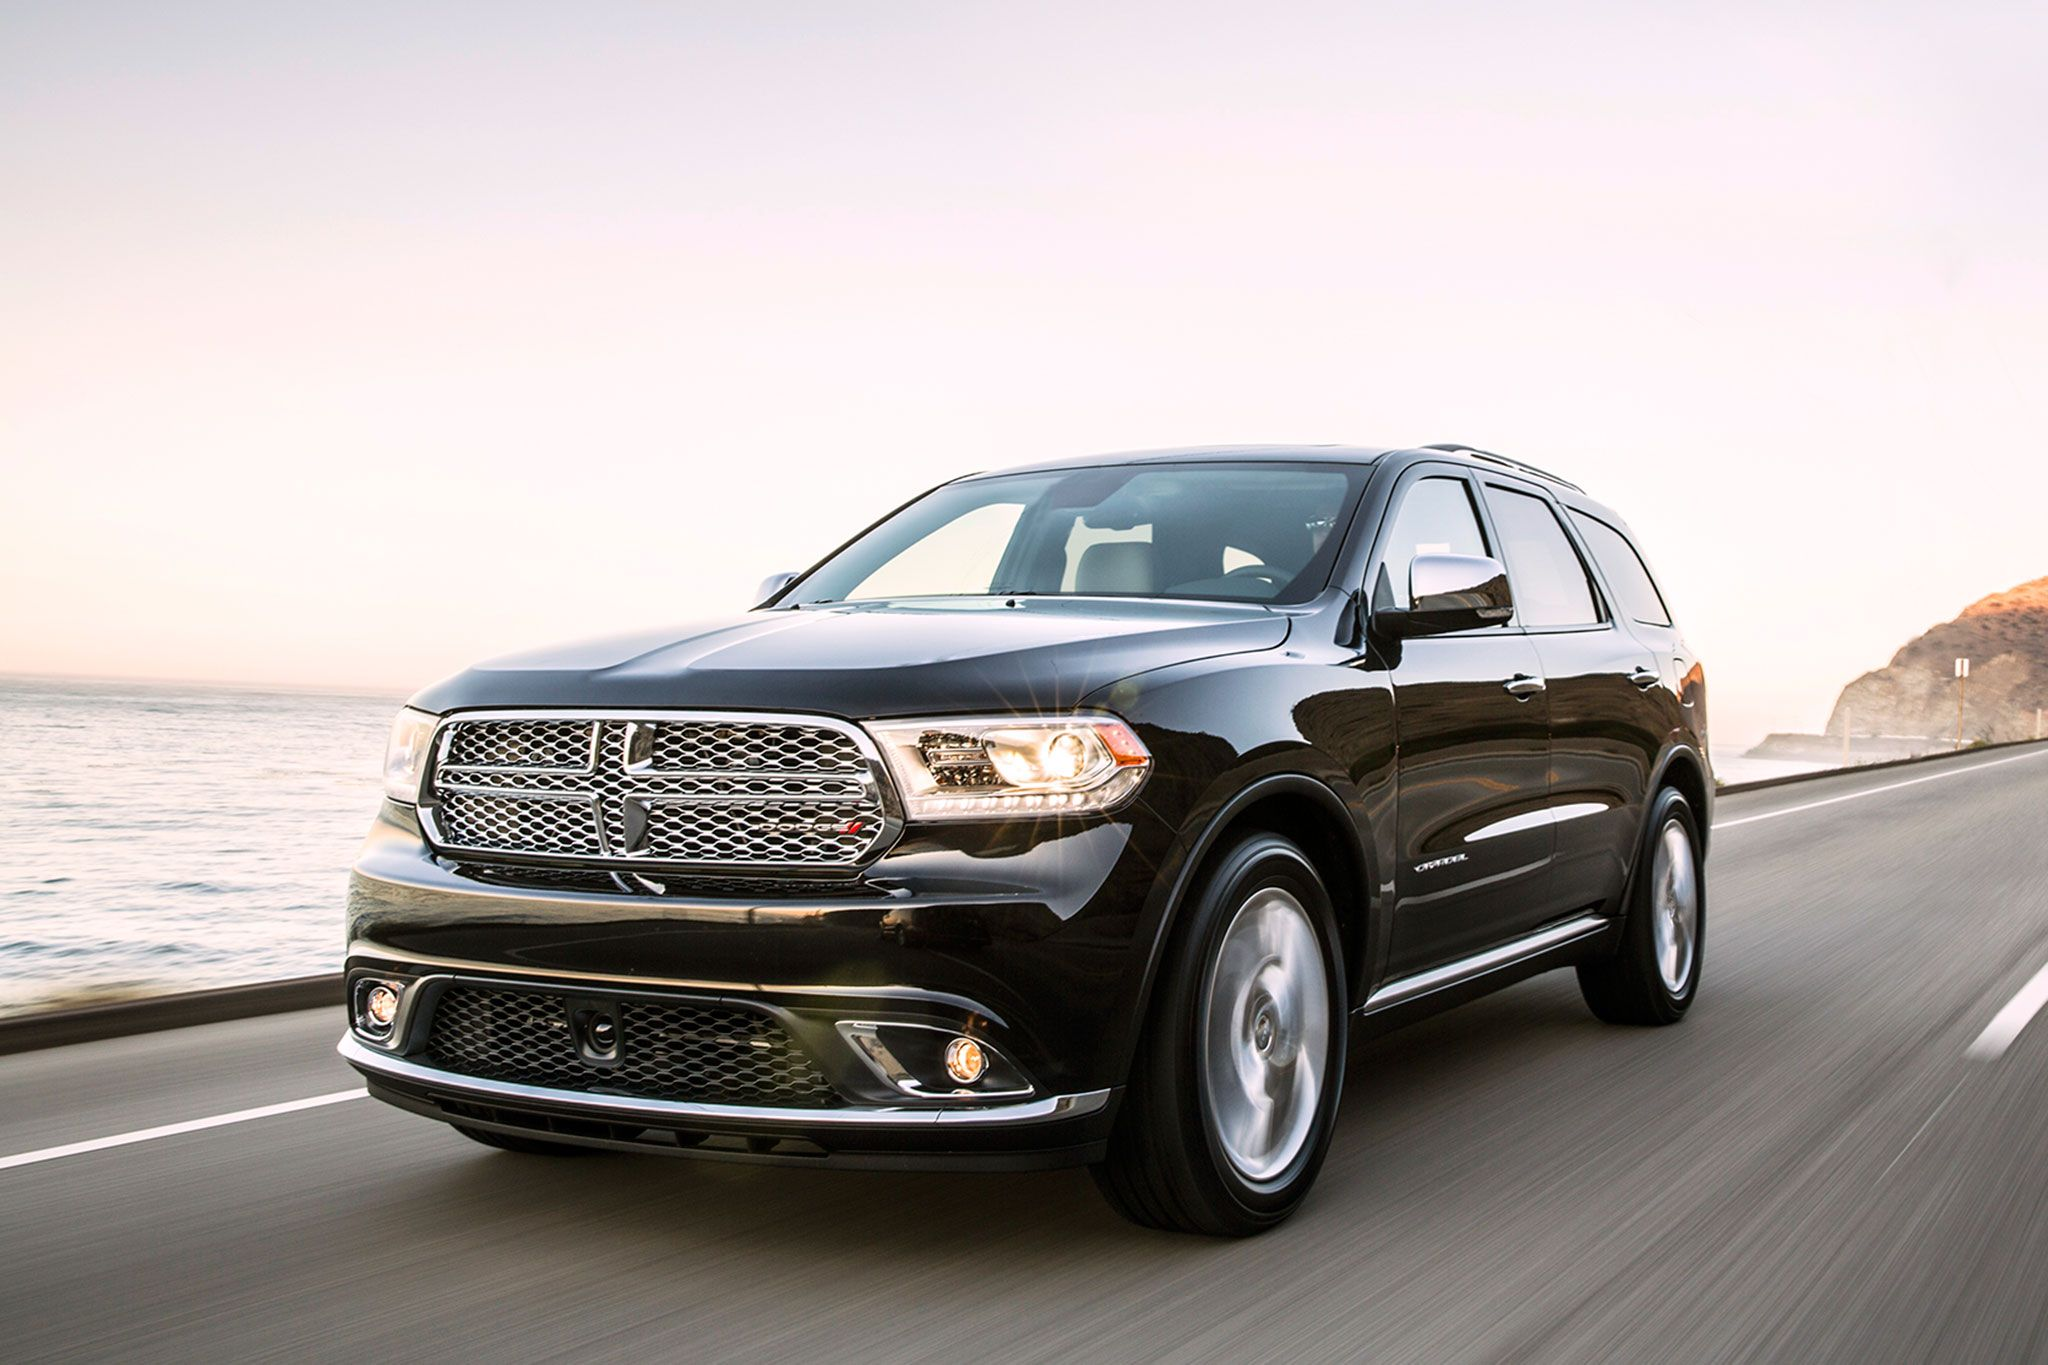 2014 Dodge Durango Citadel front three quarters view in motion